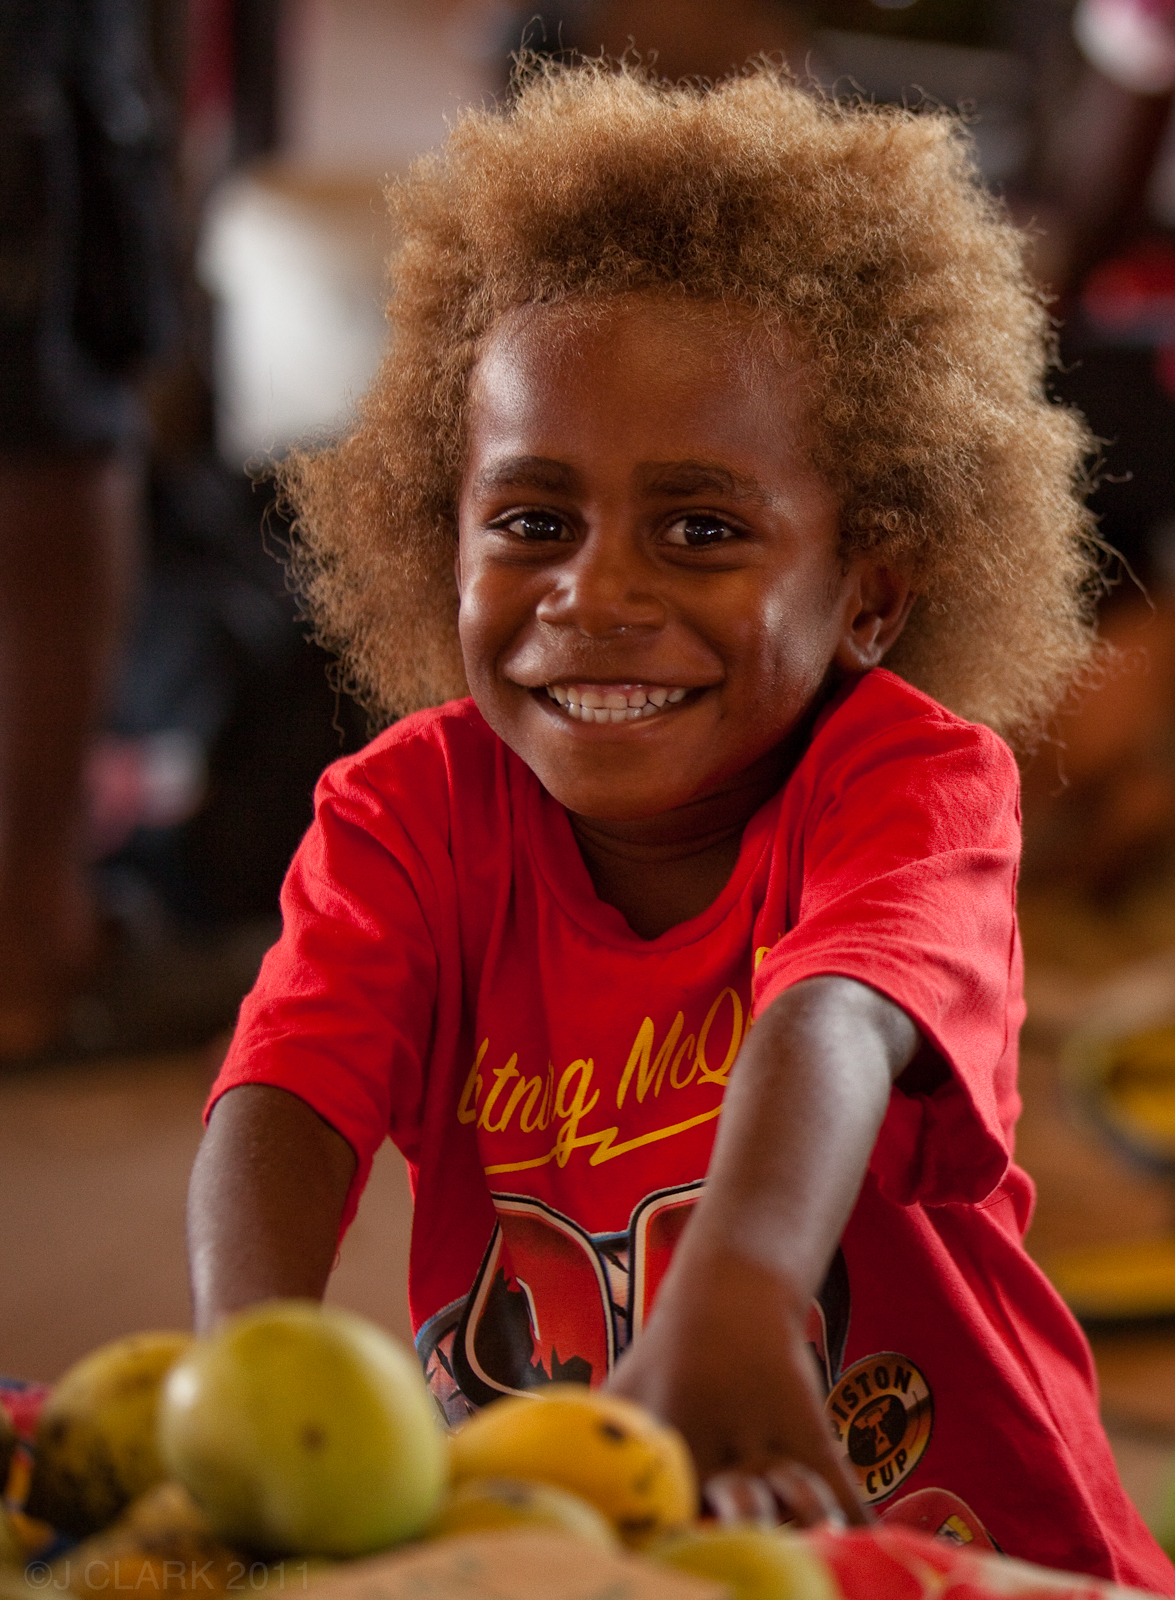 A CHILD IN PORT VILA PUBLIC MARKET